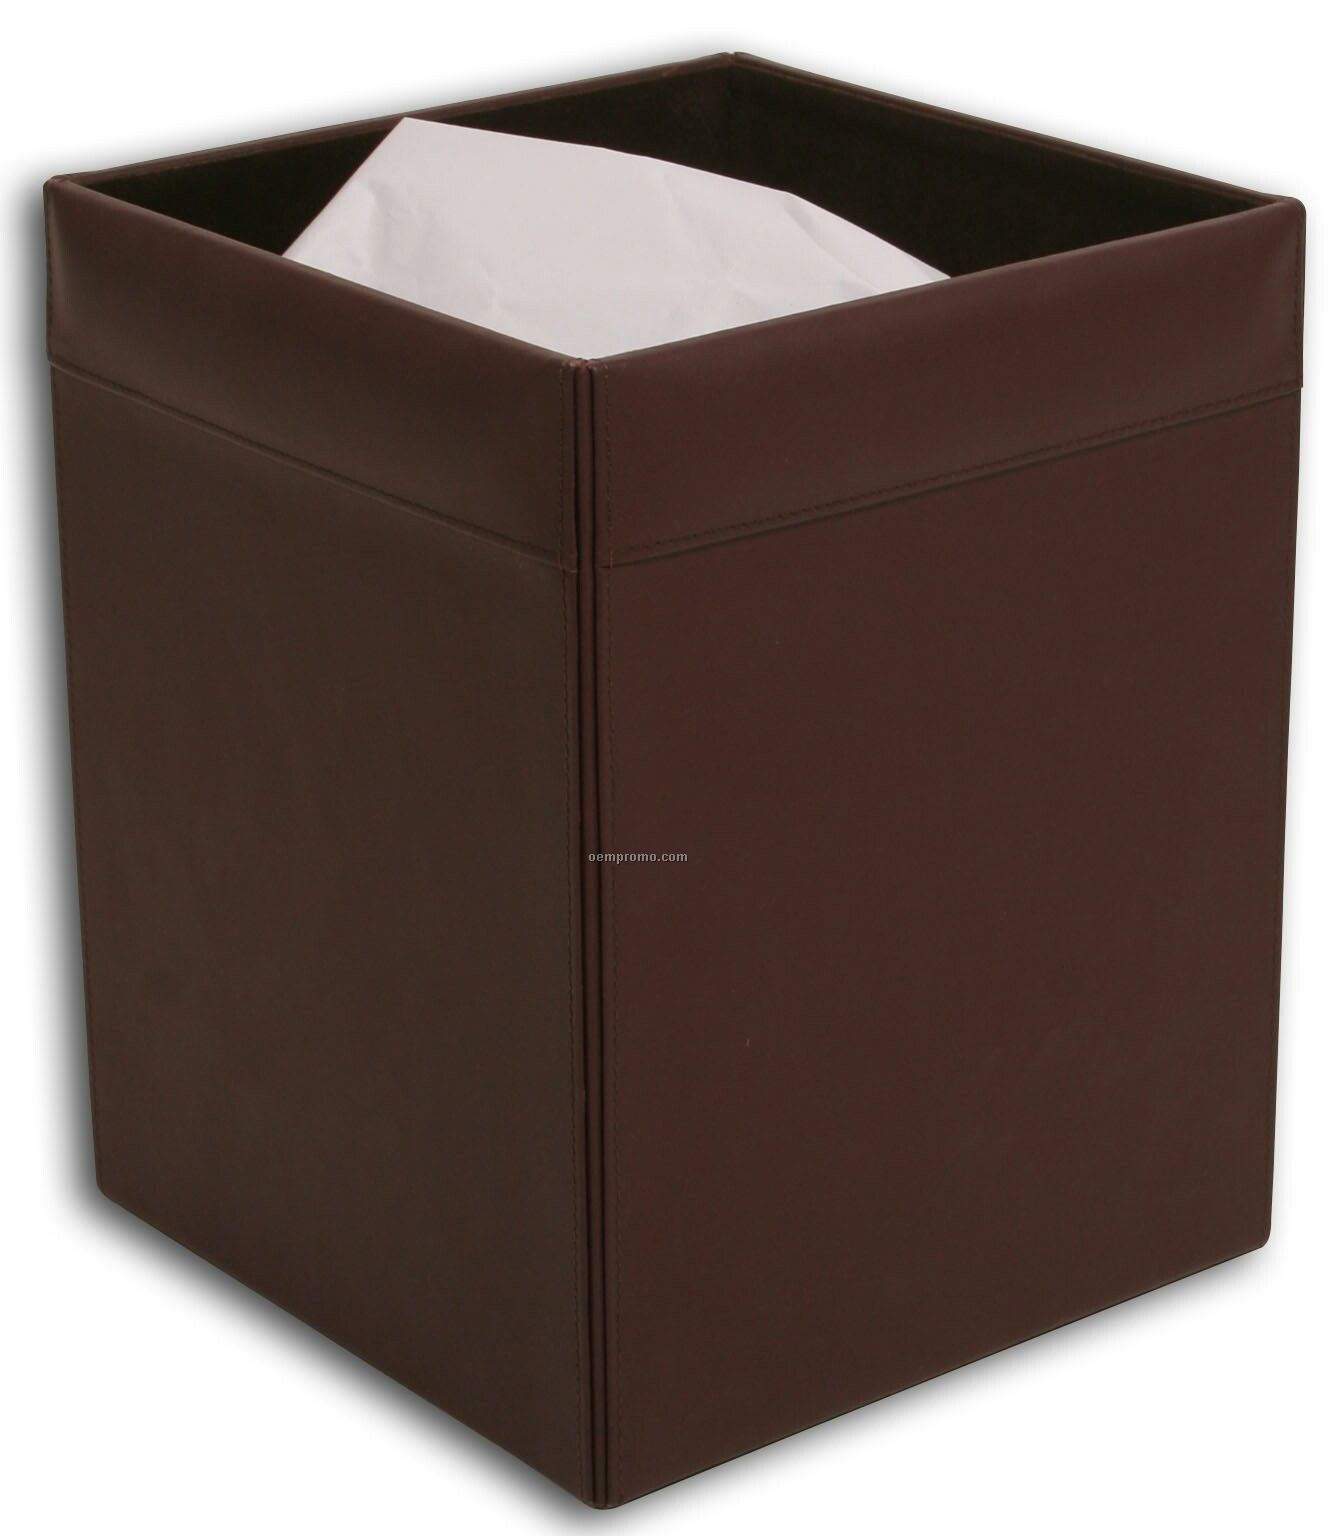 Chocolate Brown Classic Leather Square Waste Basket